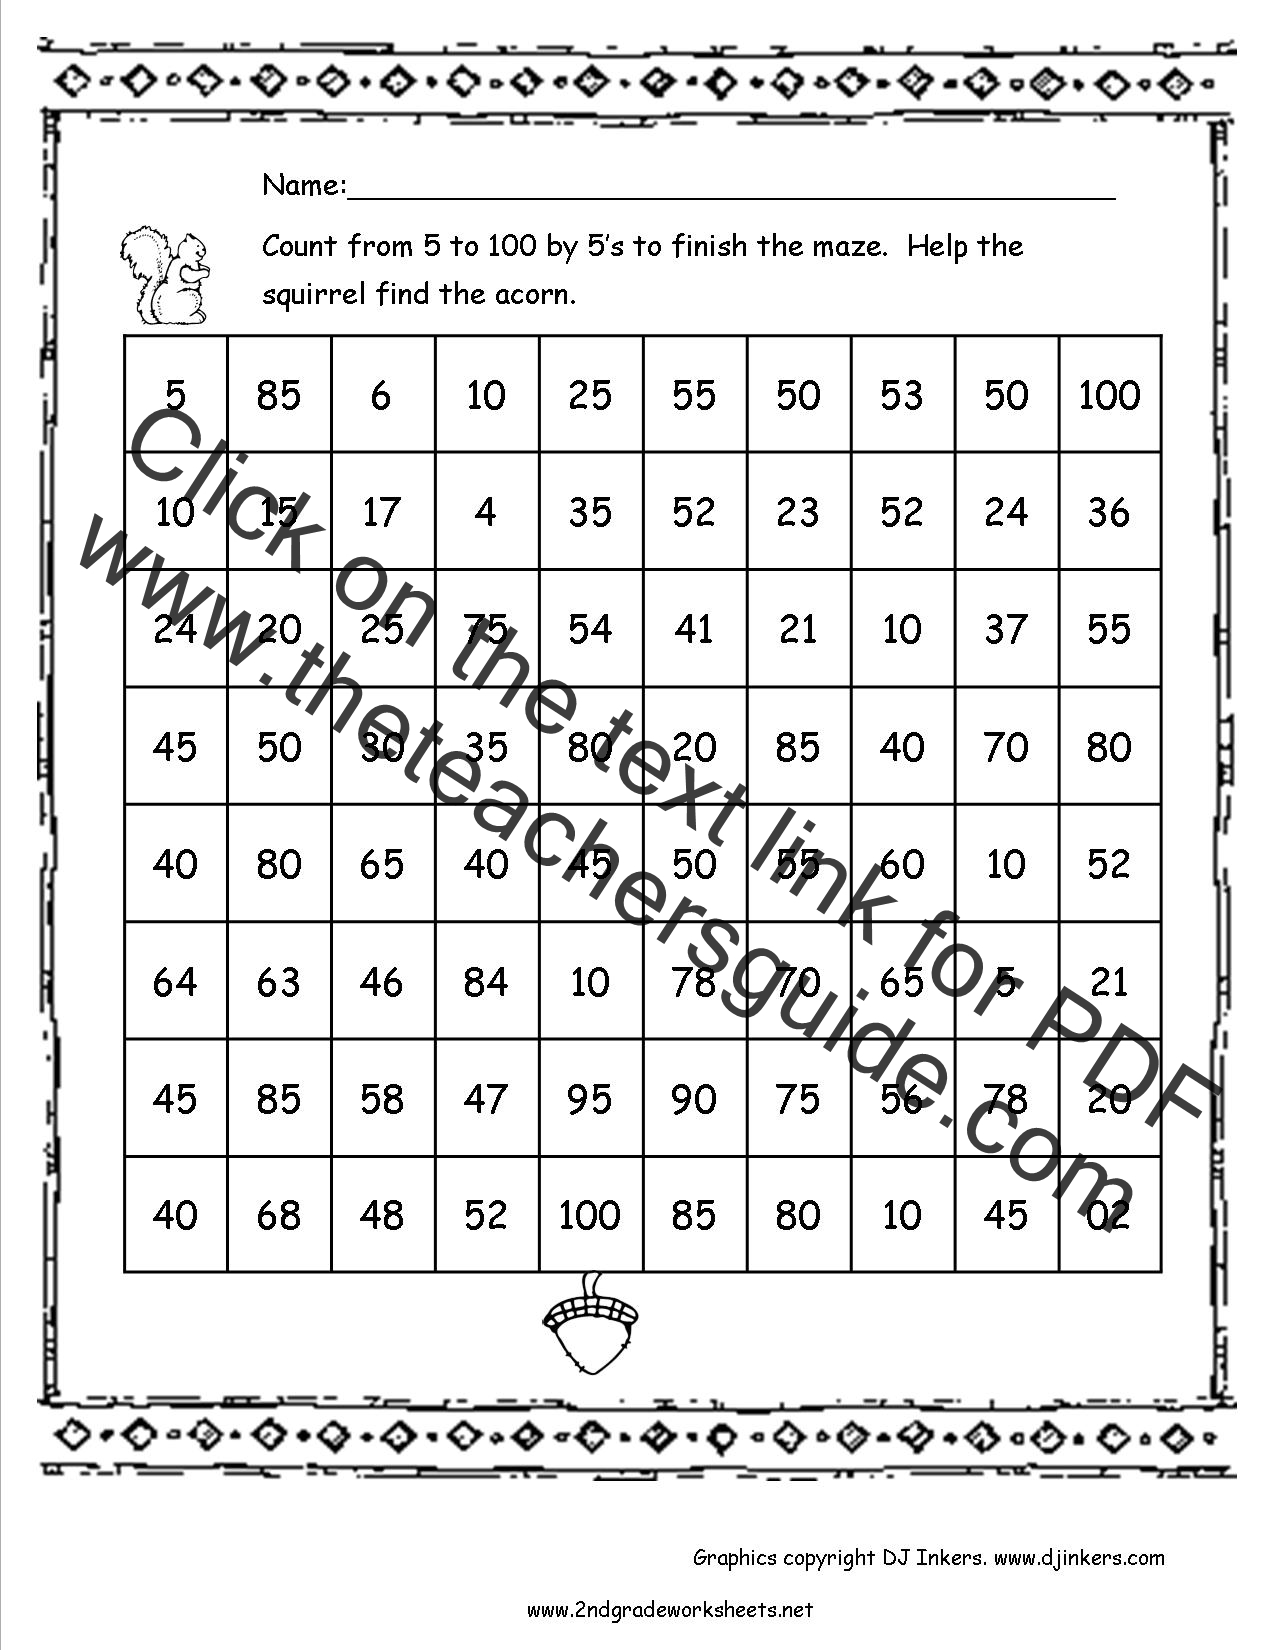 100th Day of School Worksheets and Printouts – Count to 100 Worksheet